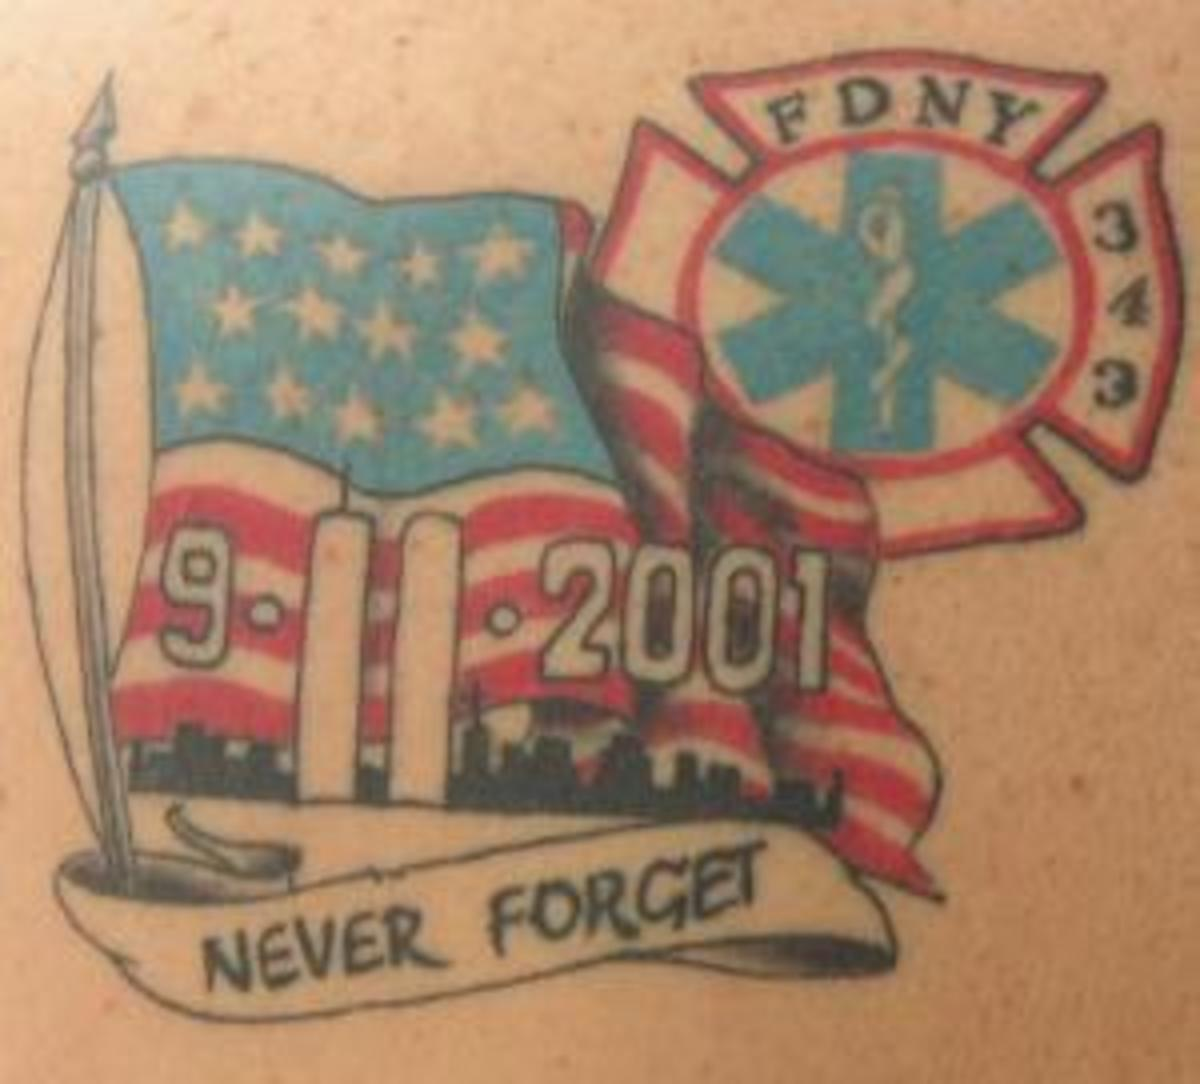 9-11-01 September 11 Memorial Tattoos